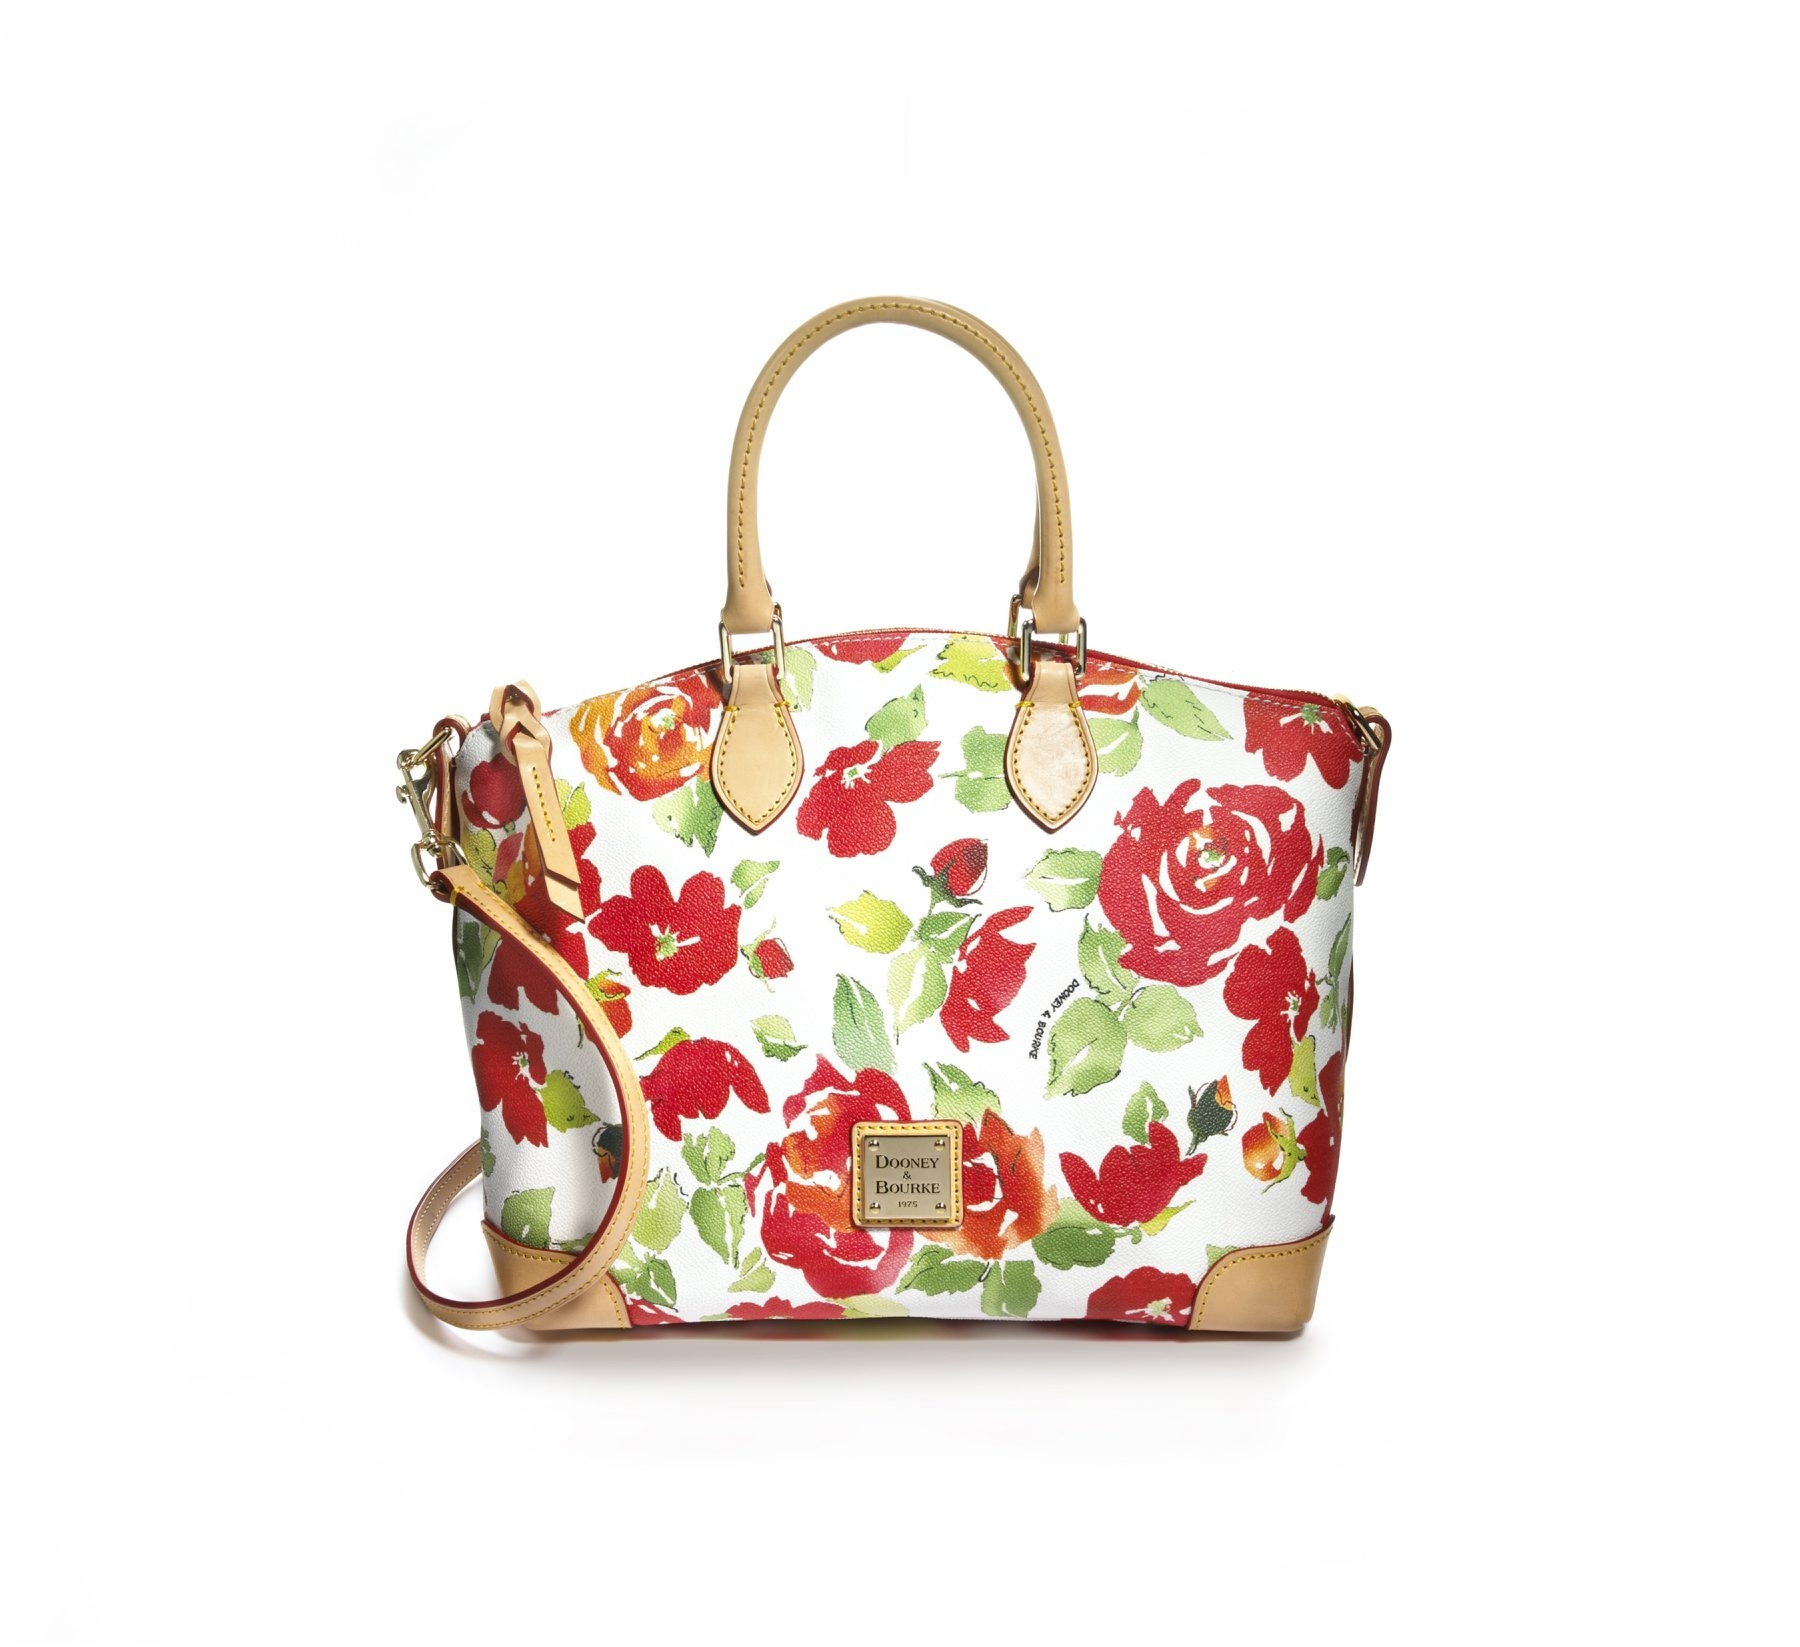 A little floral touch will add an elegant look to an outfit. Dooney & Bourke Satchel ($218, macys.com). (Macy's/MCT)